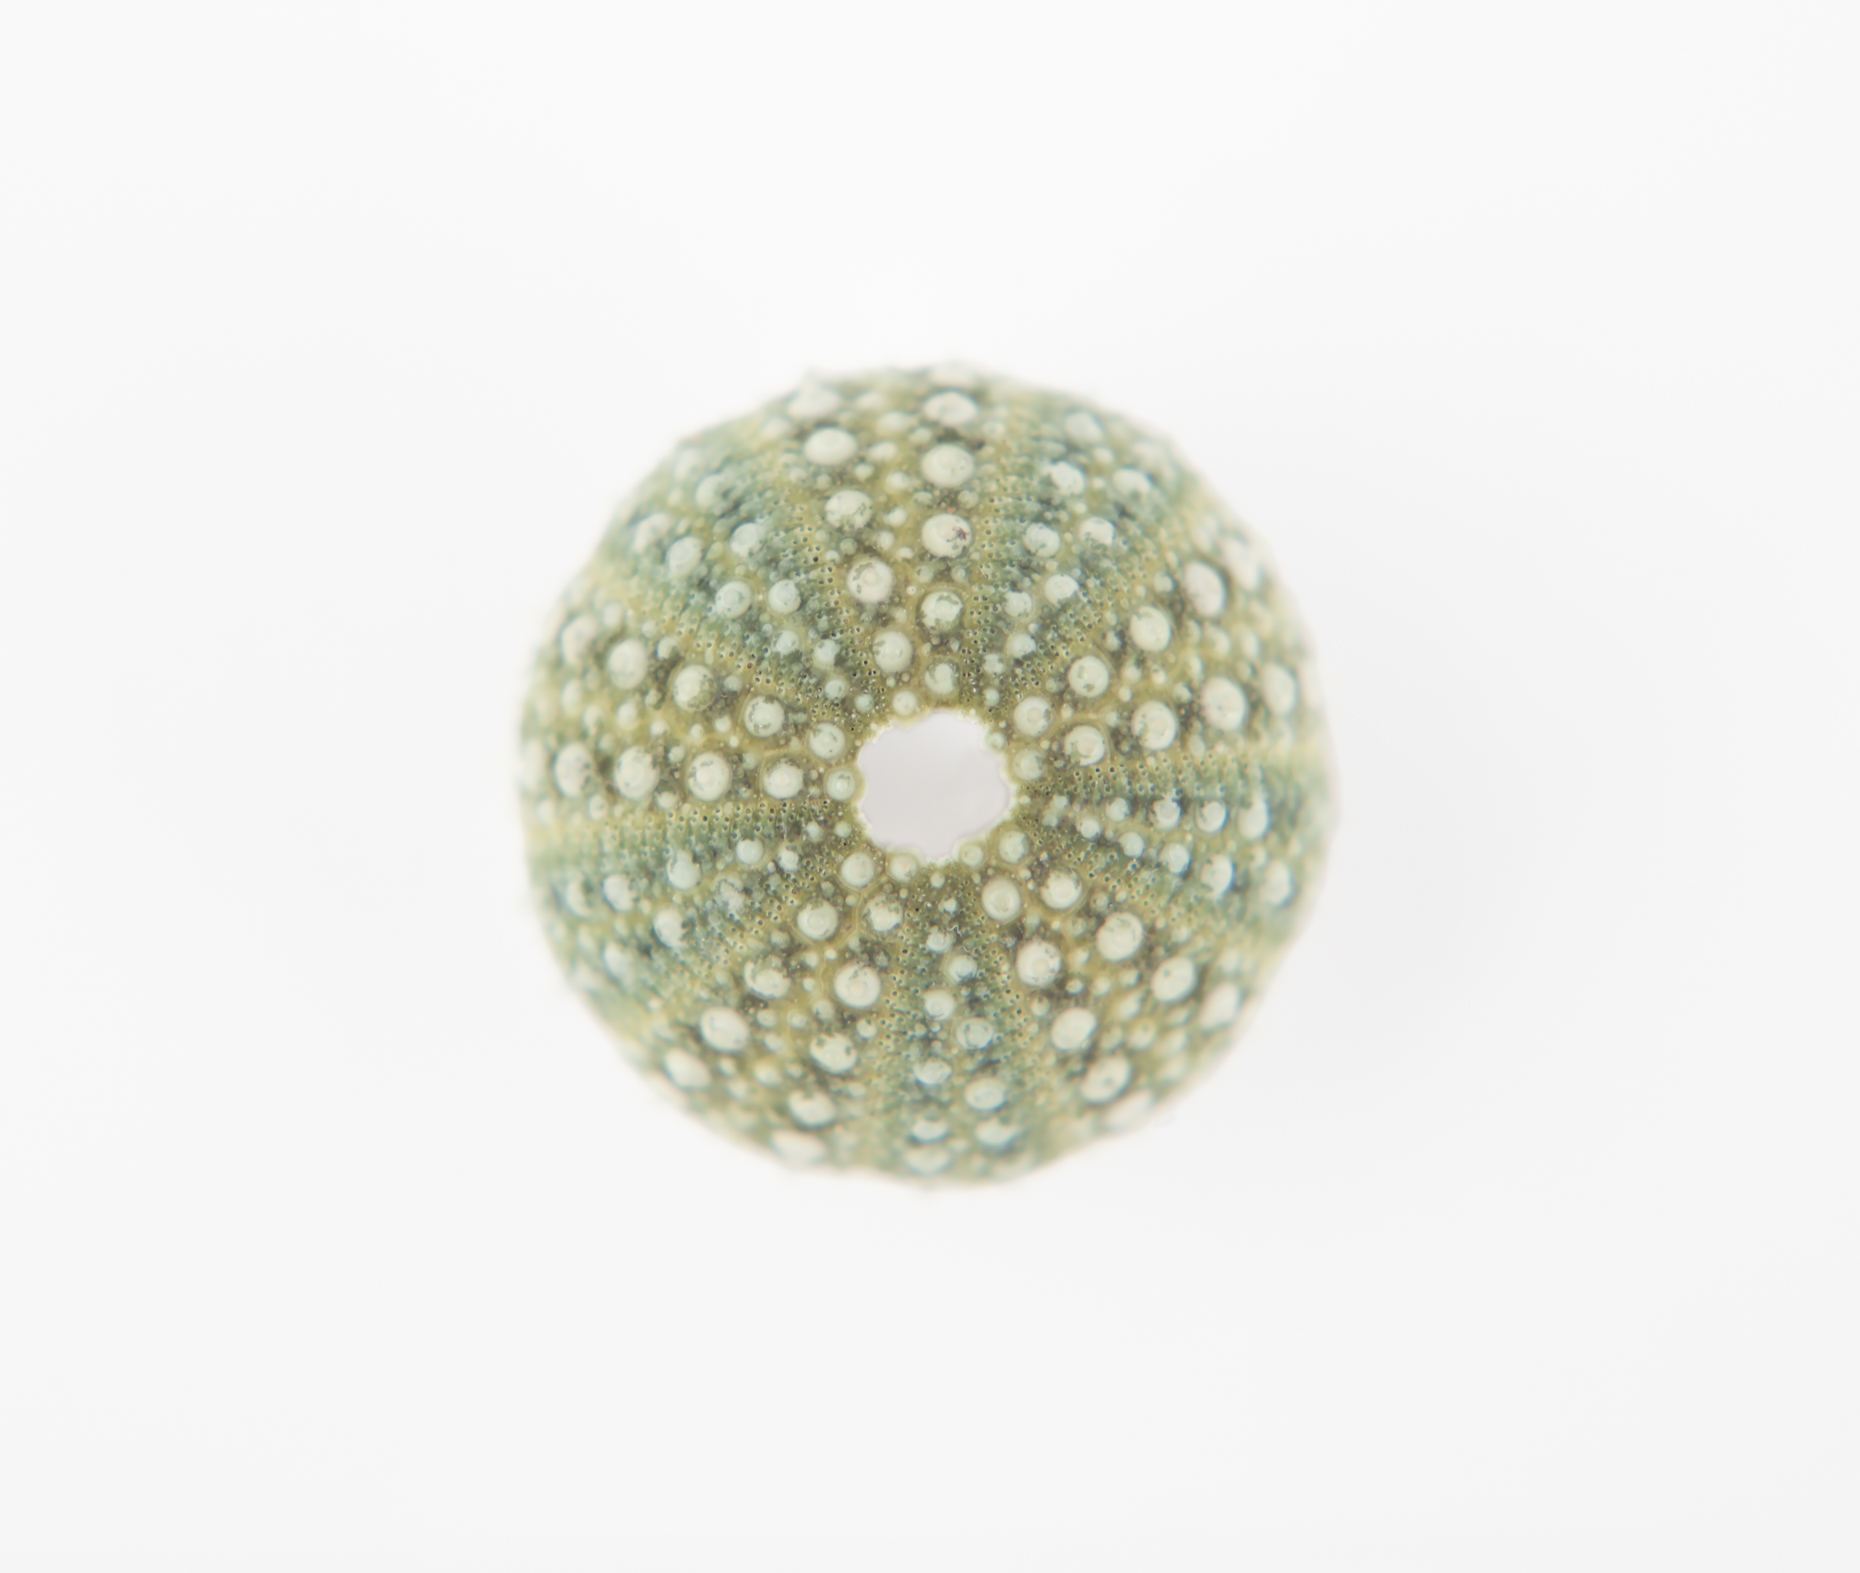 Axel Bernstorff, Collectable limited edition fine art photographic prints. Miniature sea urchin shell (Echinoidea)